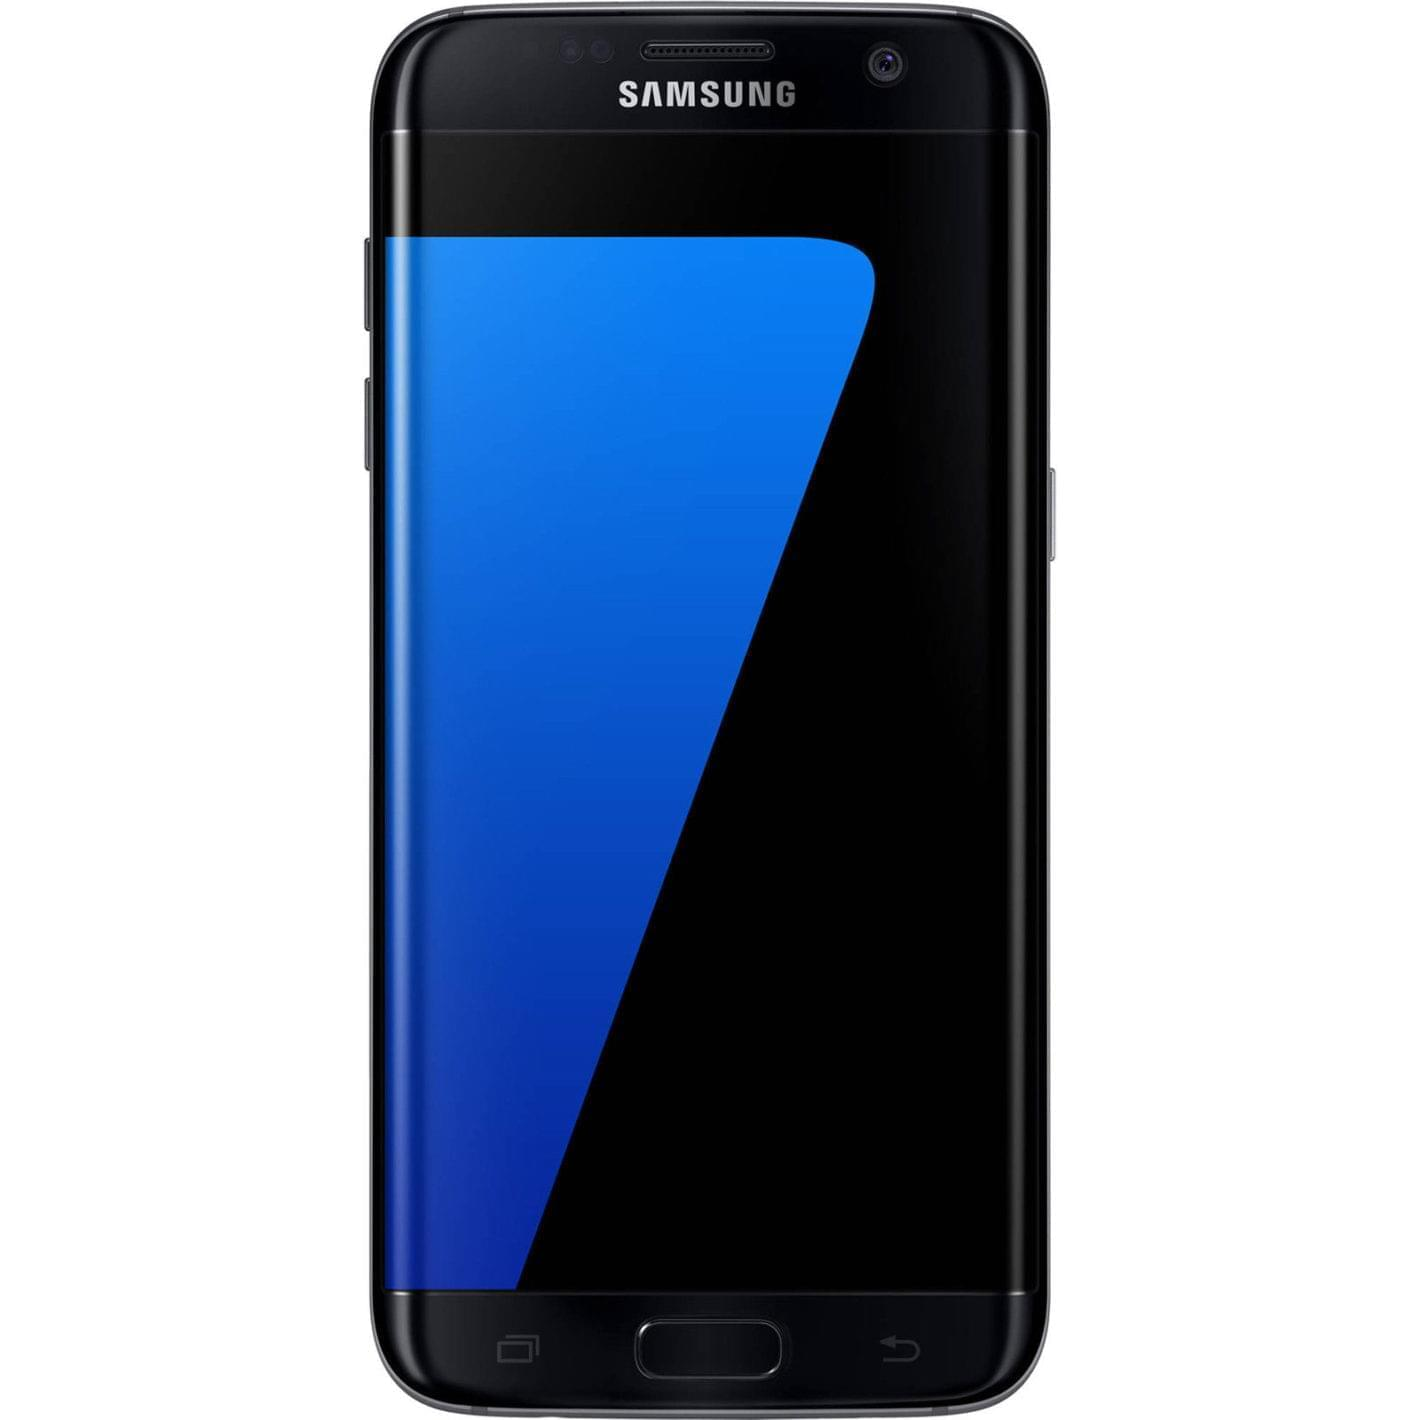 Deal Best Buy Giving Up To 450 Gift Card With Galaxy S7 Purchase 11 18 16